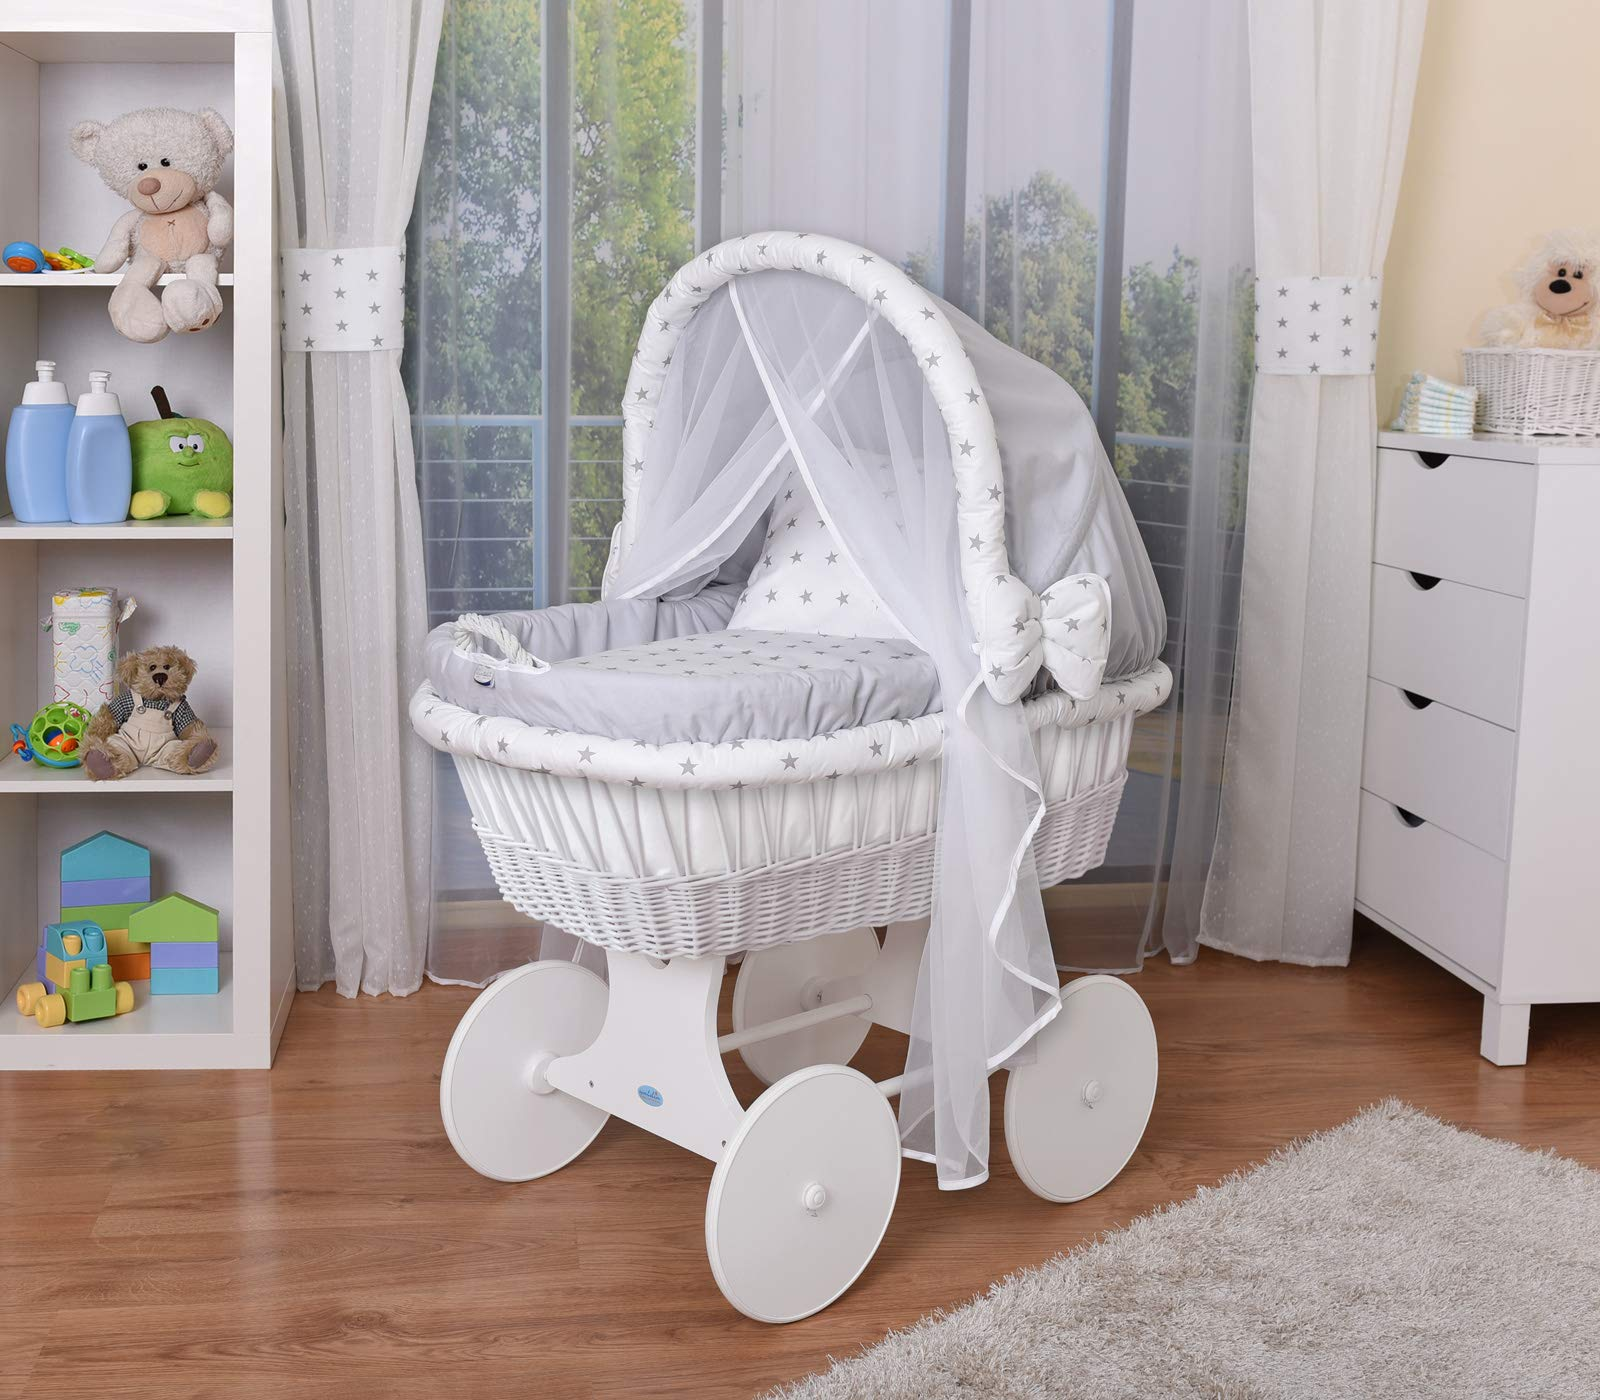 WALDIN Baby Wicker Cradle,Moses Basket,44 Models Available,White Painted Stand/Wheels,Textile Colour Grey/Grey Stars  For more models and colours on Amazon click on WALDIN under the title Bassinet complete with bedding and stand Certified to safety standard EN 1130-1/2 1